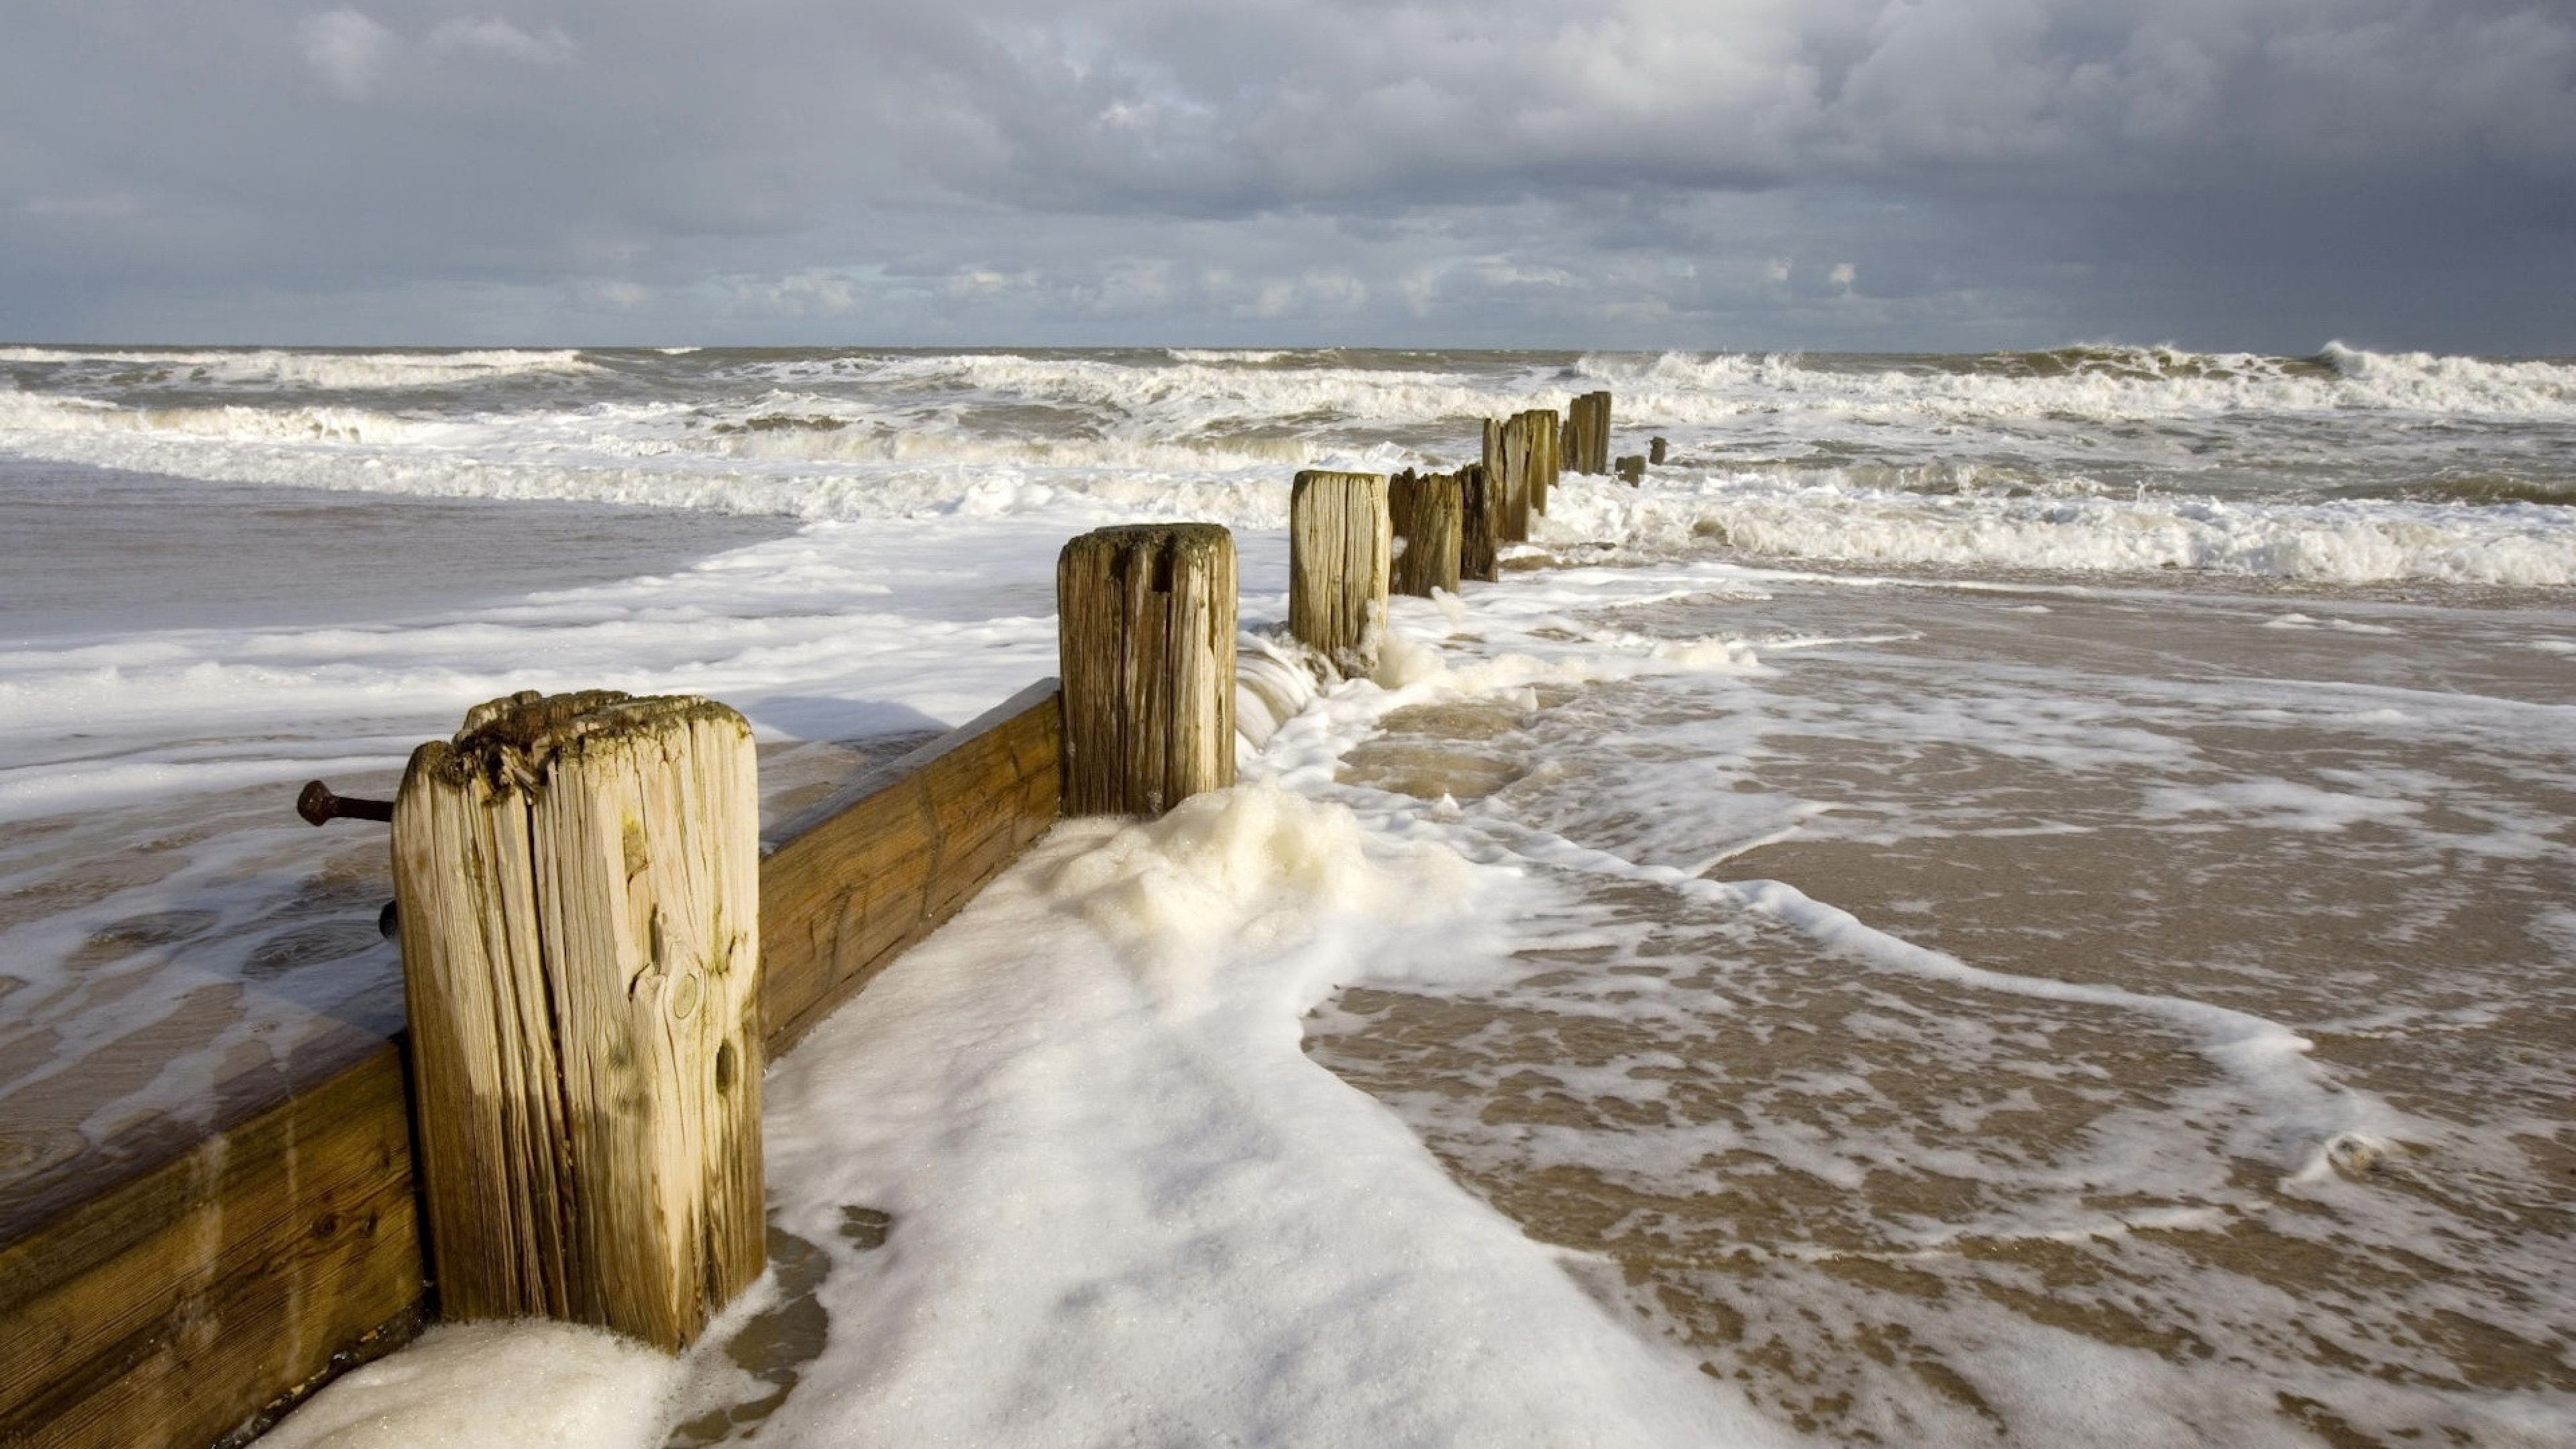 3840x2160 Preview wallpaper sea, storm, waves, dirty water, stakes, coast, foam